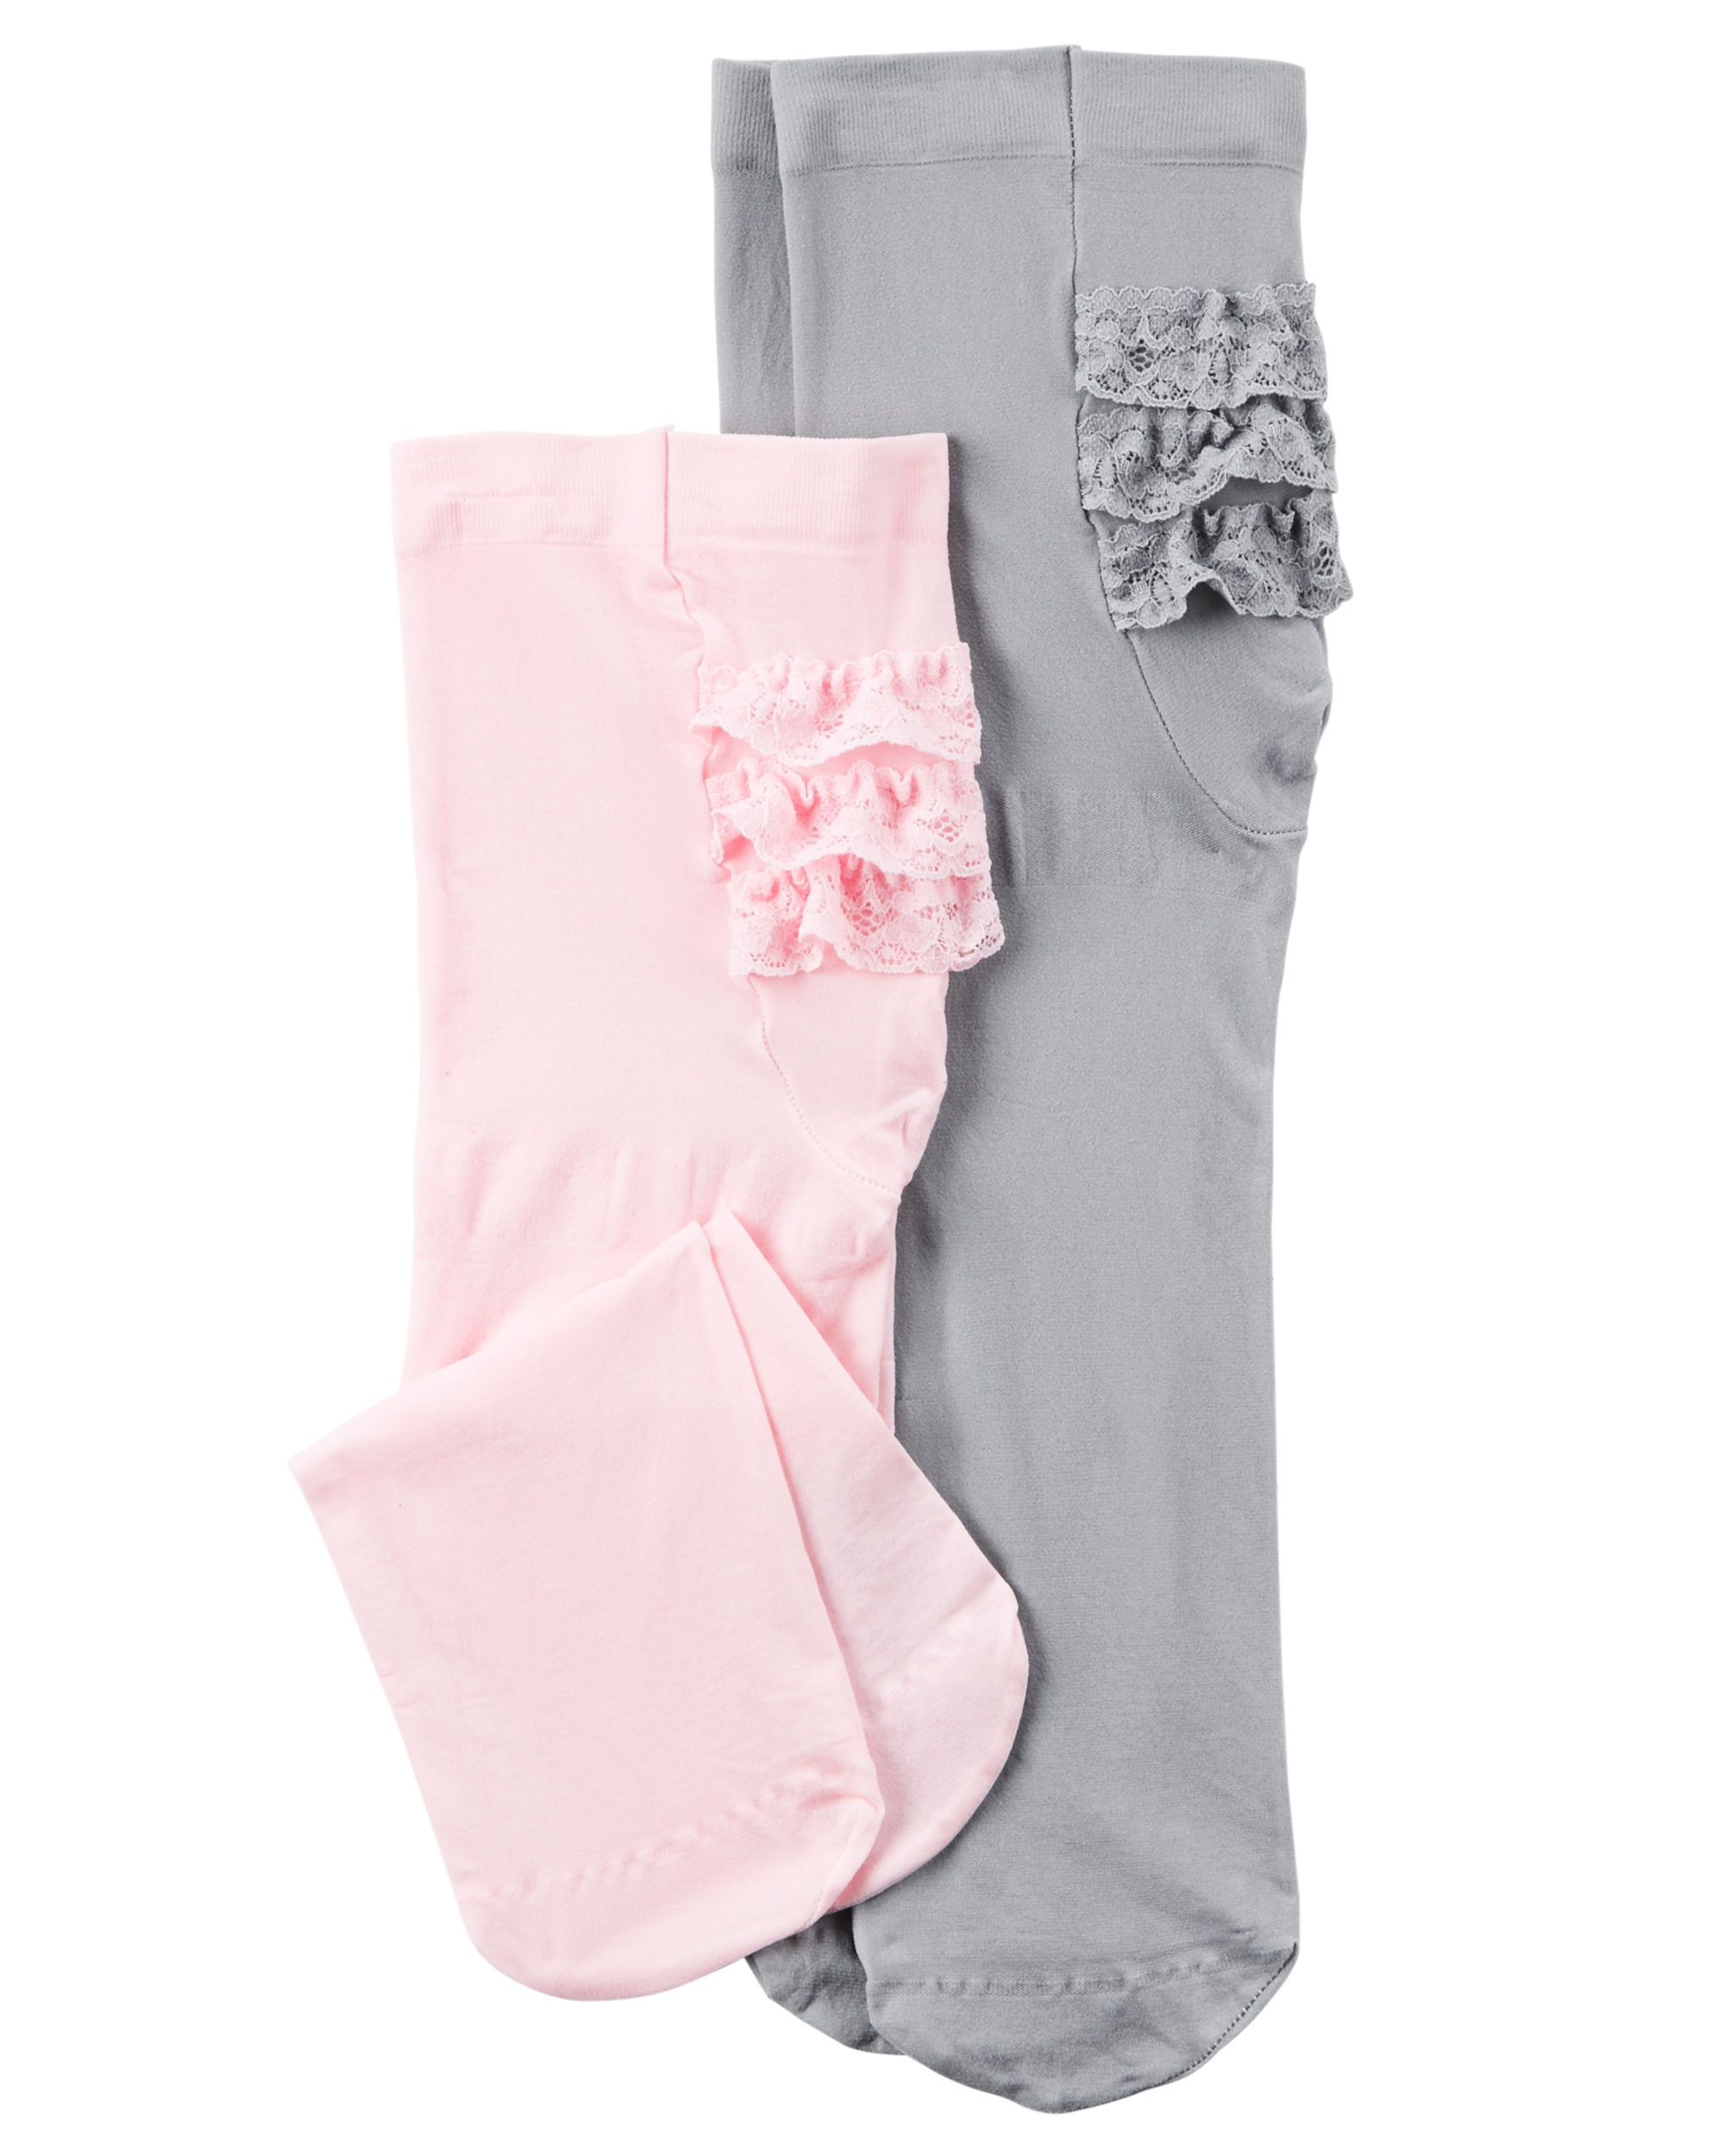 30cf1bca96ba0 Baby Girl 2-Pack Tights from Carters.com. Shop clothing & accessories from  a trusted name in kids, toddlers, and baby clothes.